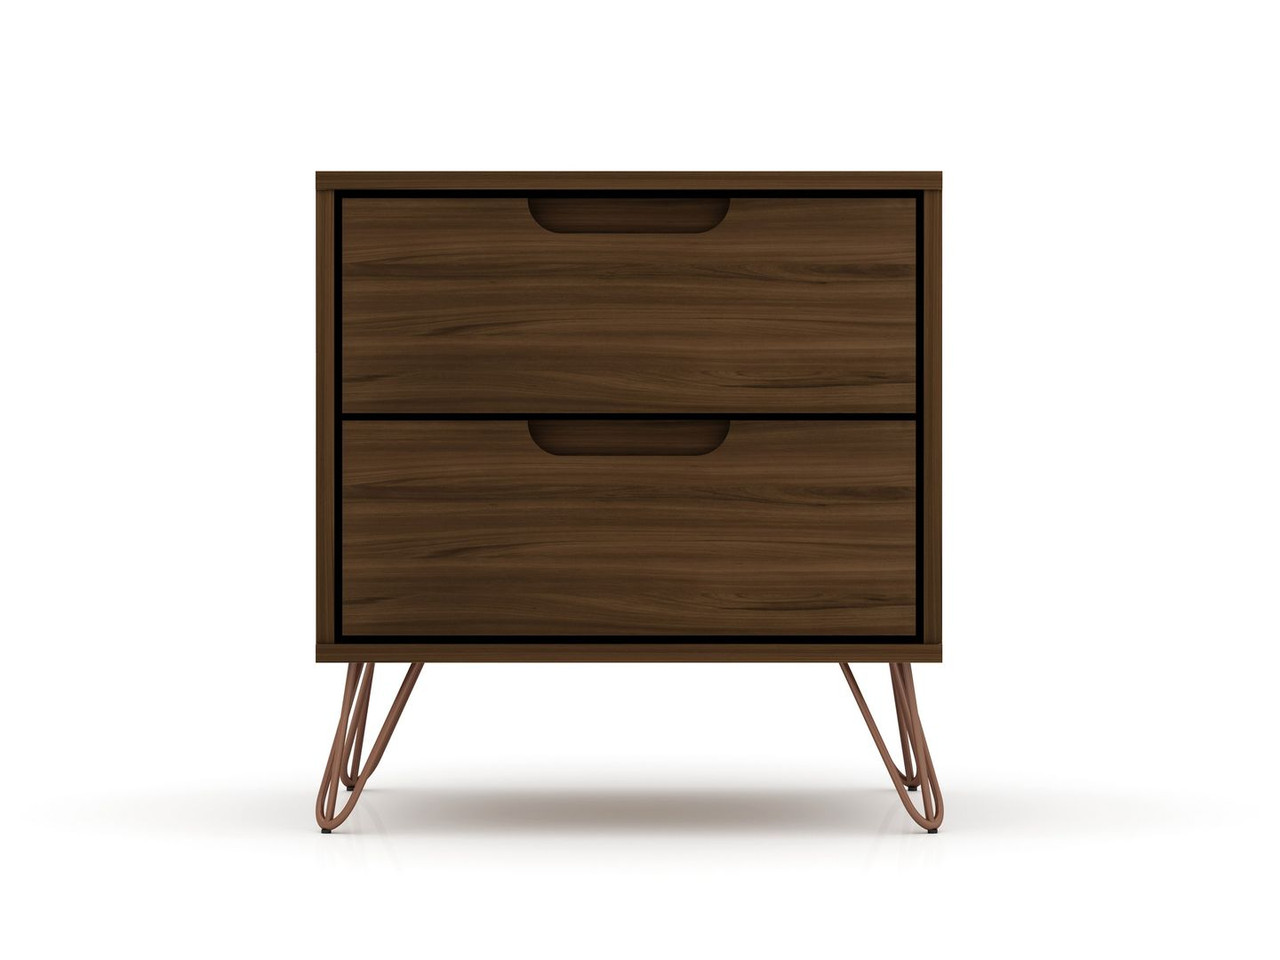 Manhattan Comfort Rockefeller 2 0 Mid Century Modern Nightstand With 2 Drawer In Brown Furniture East Inc